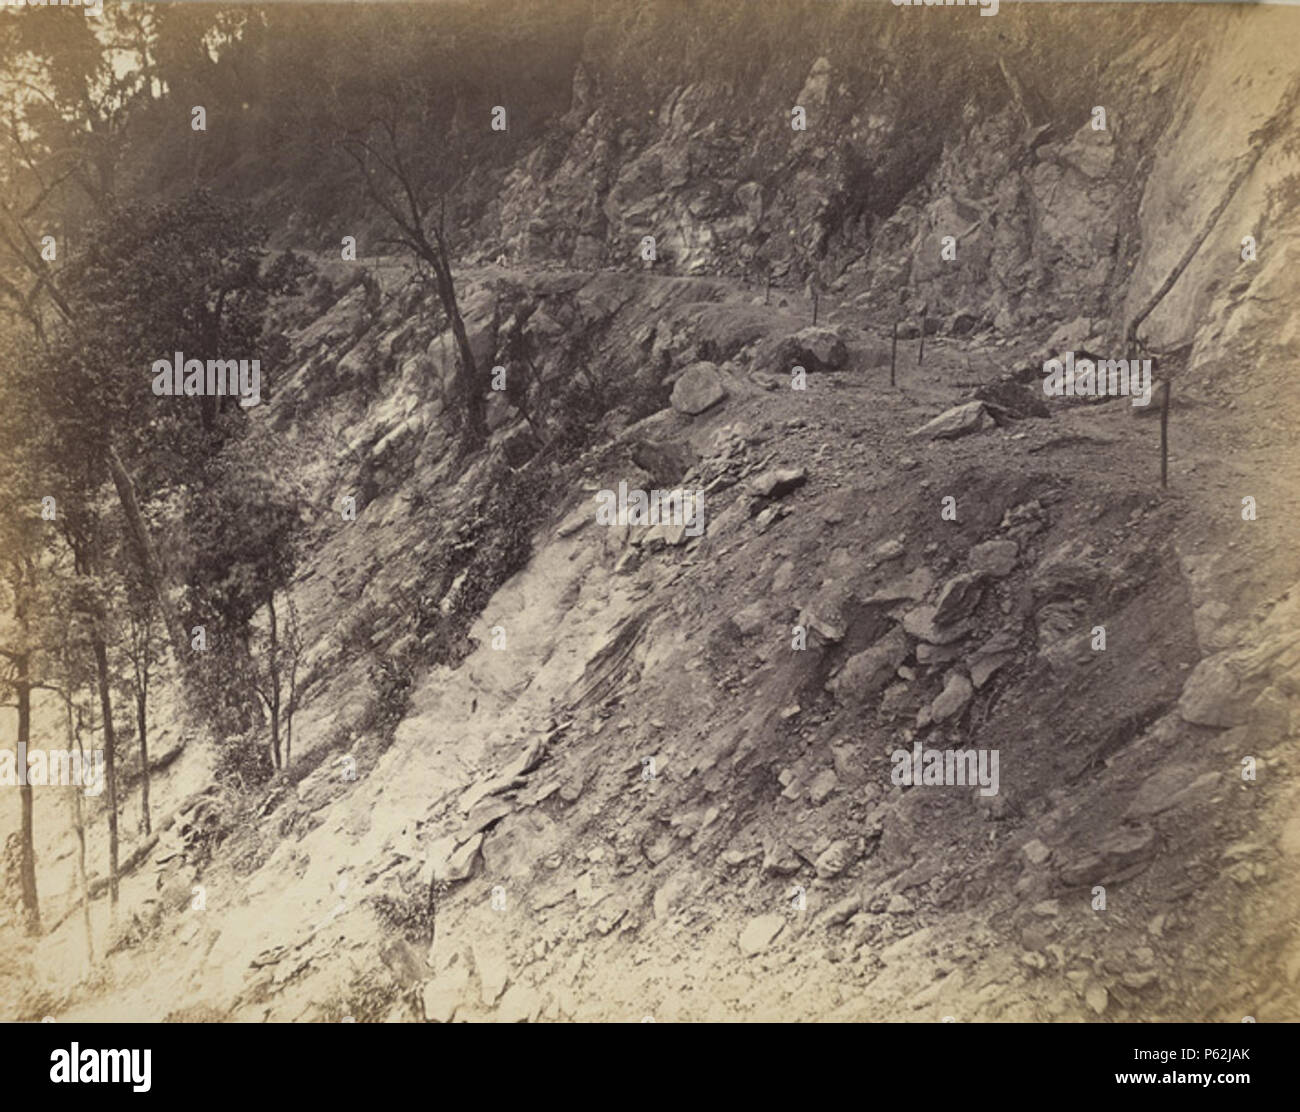 N/A  English: Two miles above Gyabarry, looking South Photograph